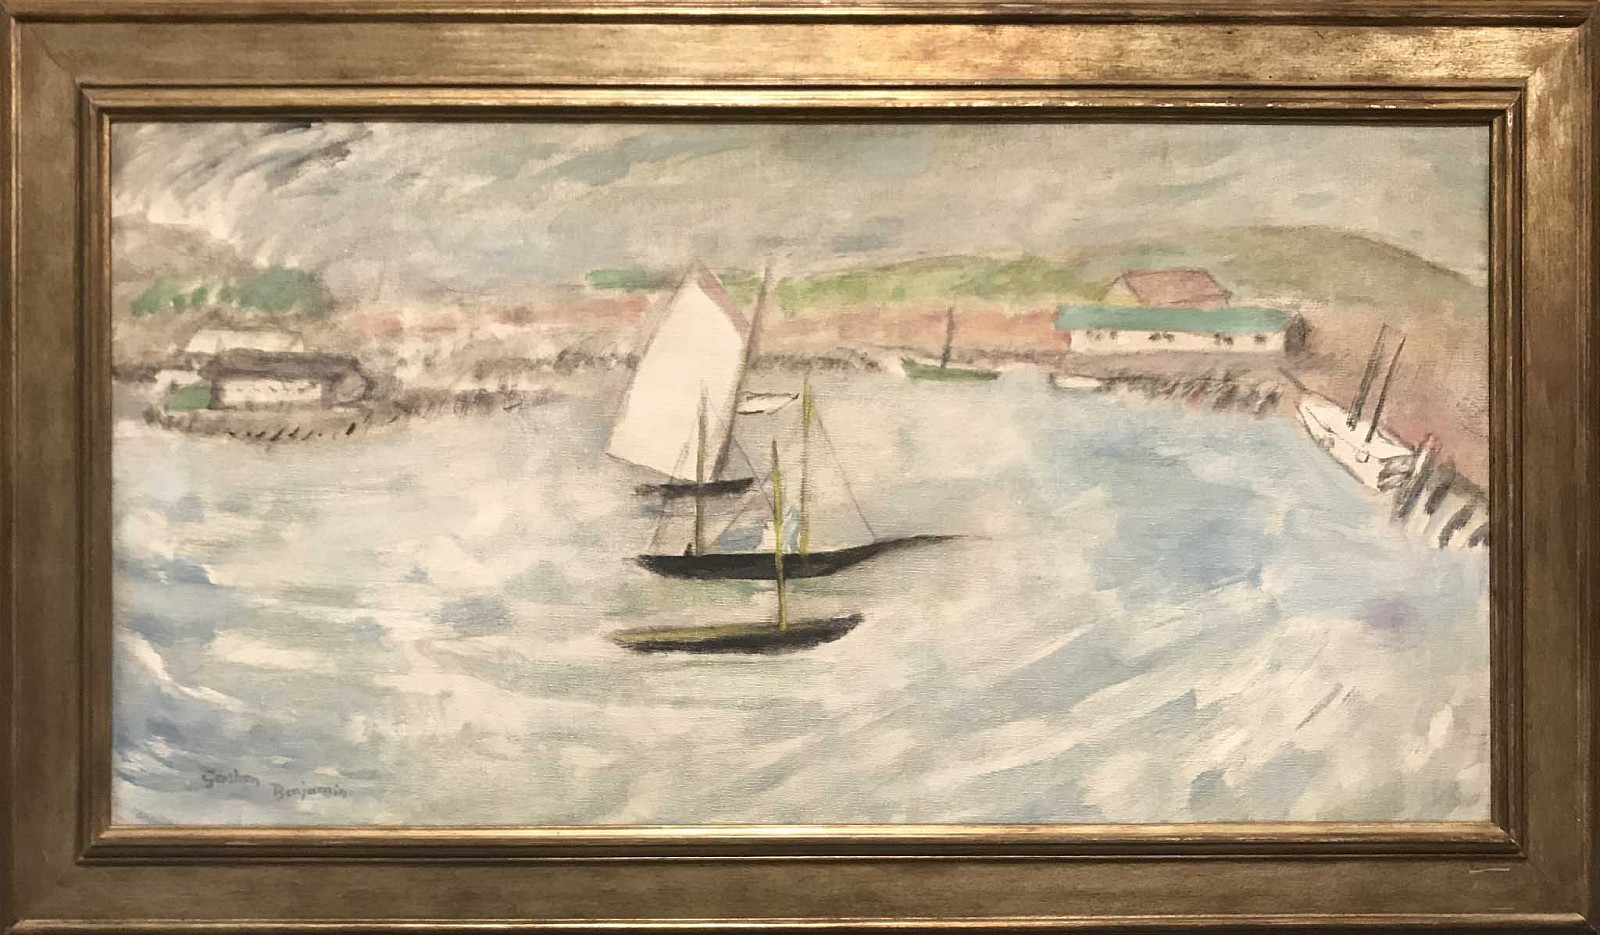 Gershon Benjamin ,   Gloucester Harbor #3  ,  1930 ca     oil on canvas ,  17 x 34 in. (43.2 x 86.4 cm)     GB1803021